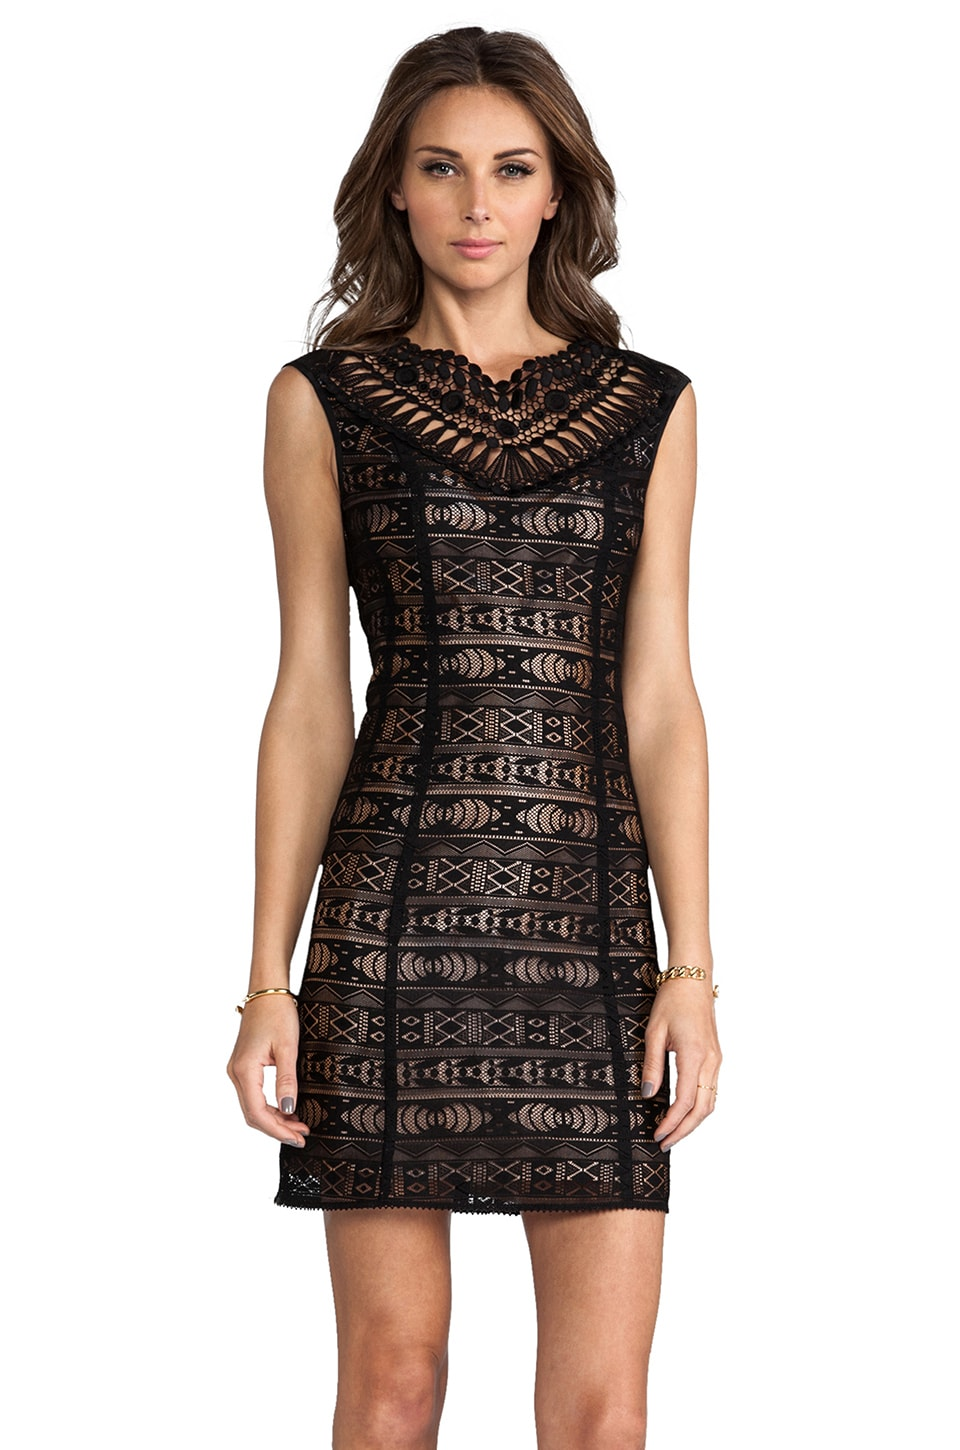 Nanette Lepore Sunrise Dress in Black